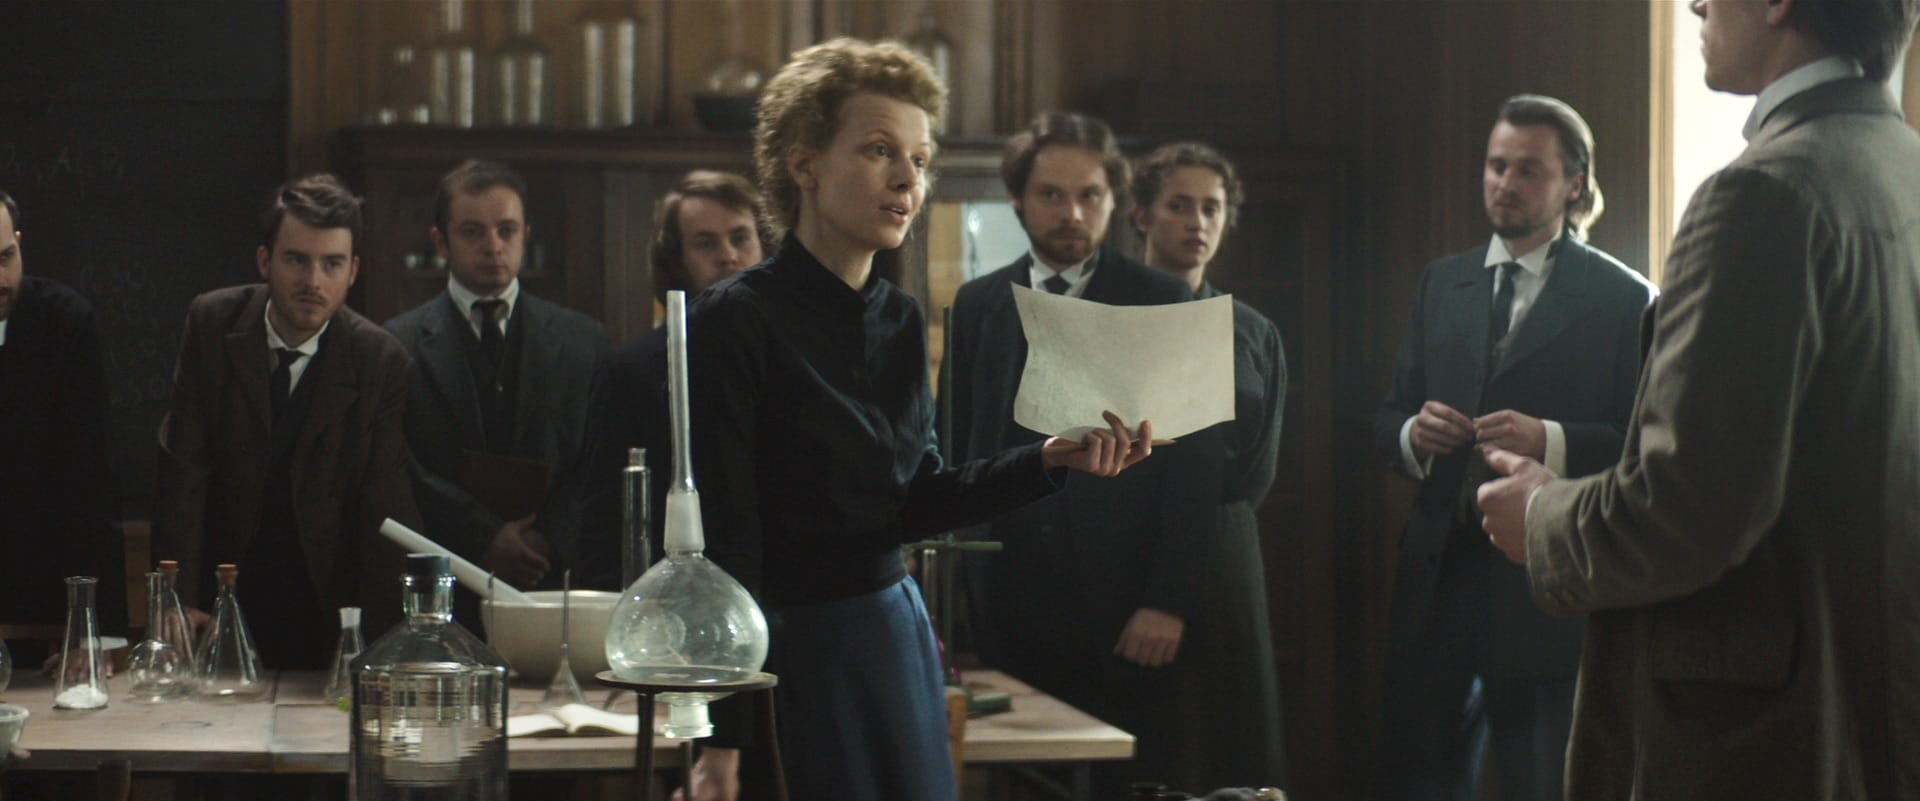 Marie Curie Marie Noëlle (photo 1